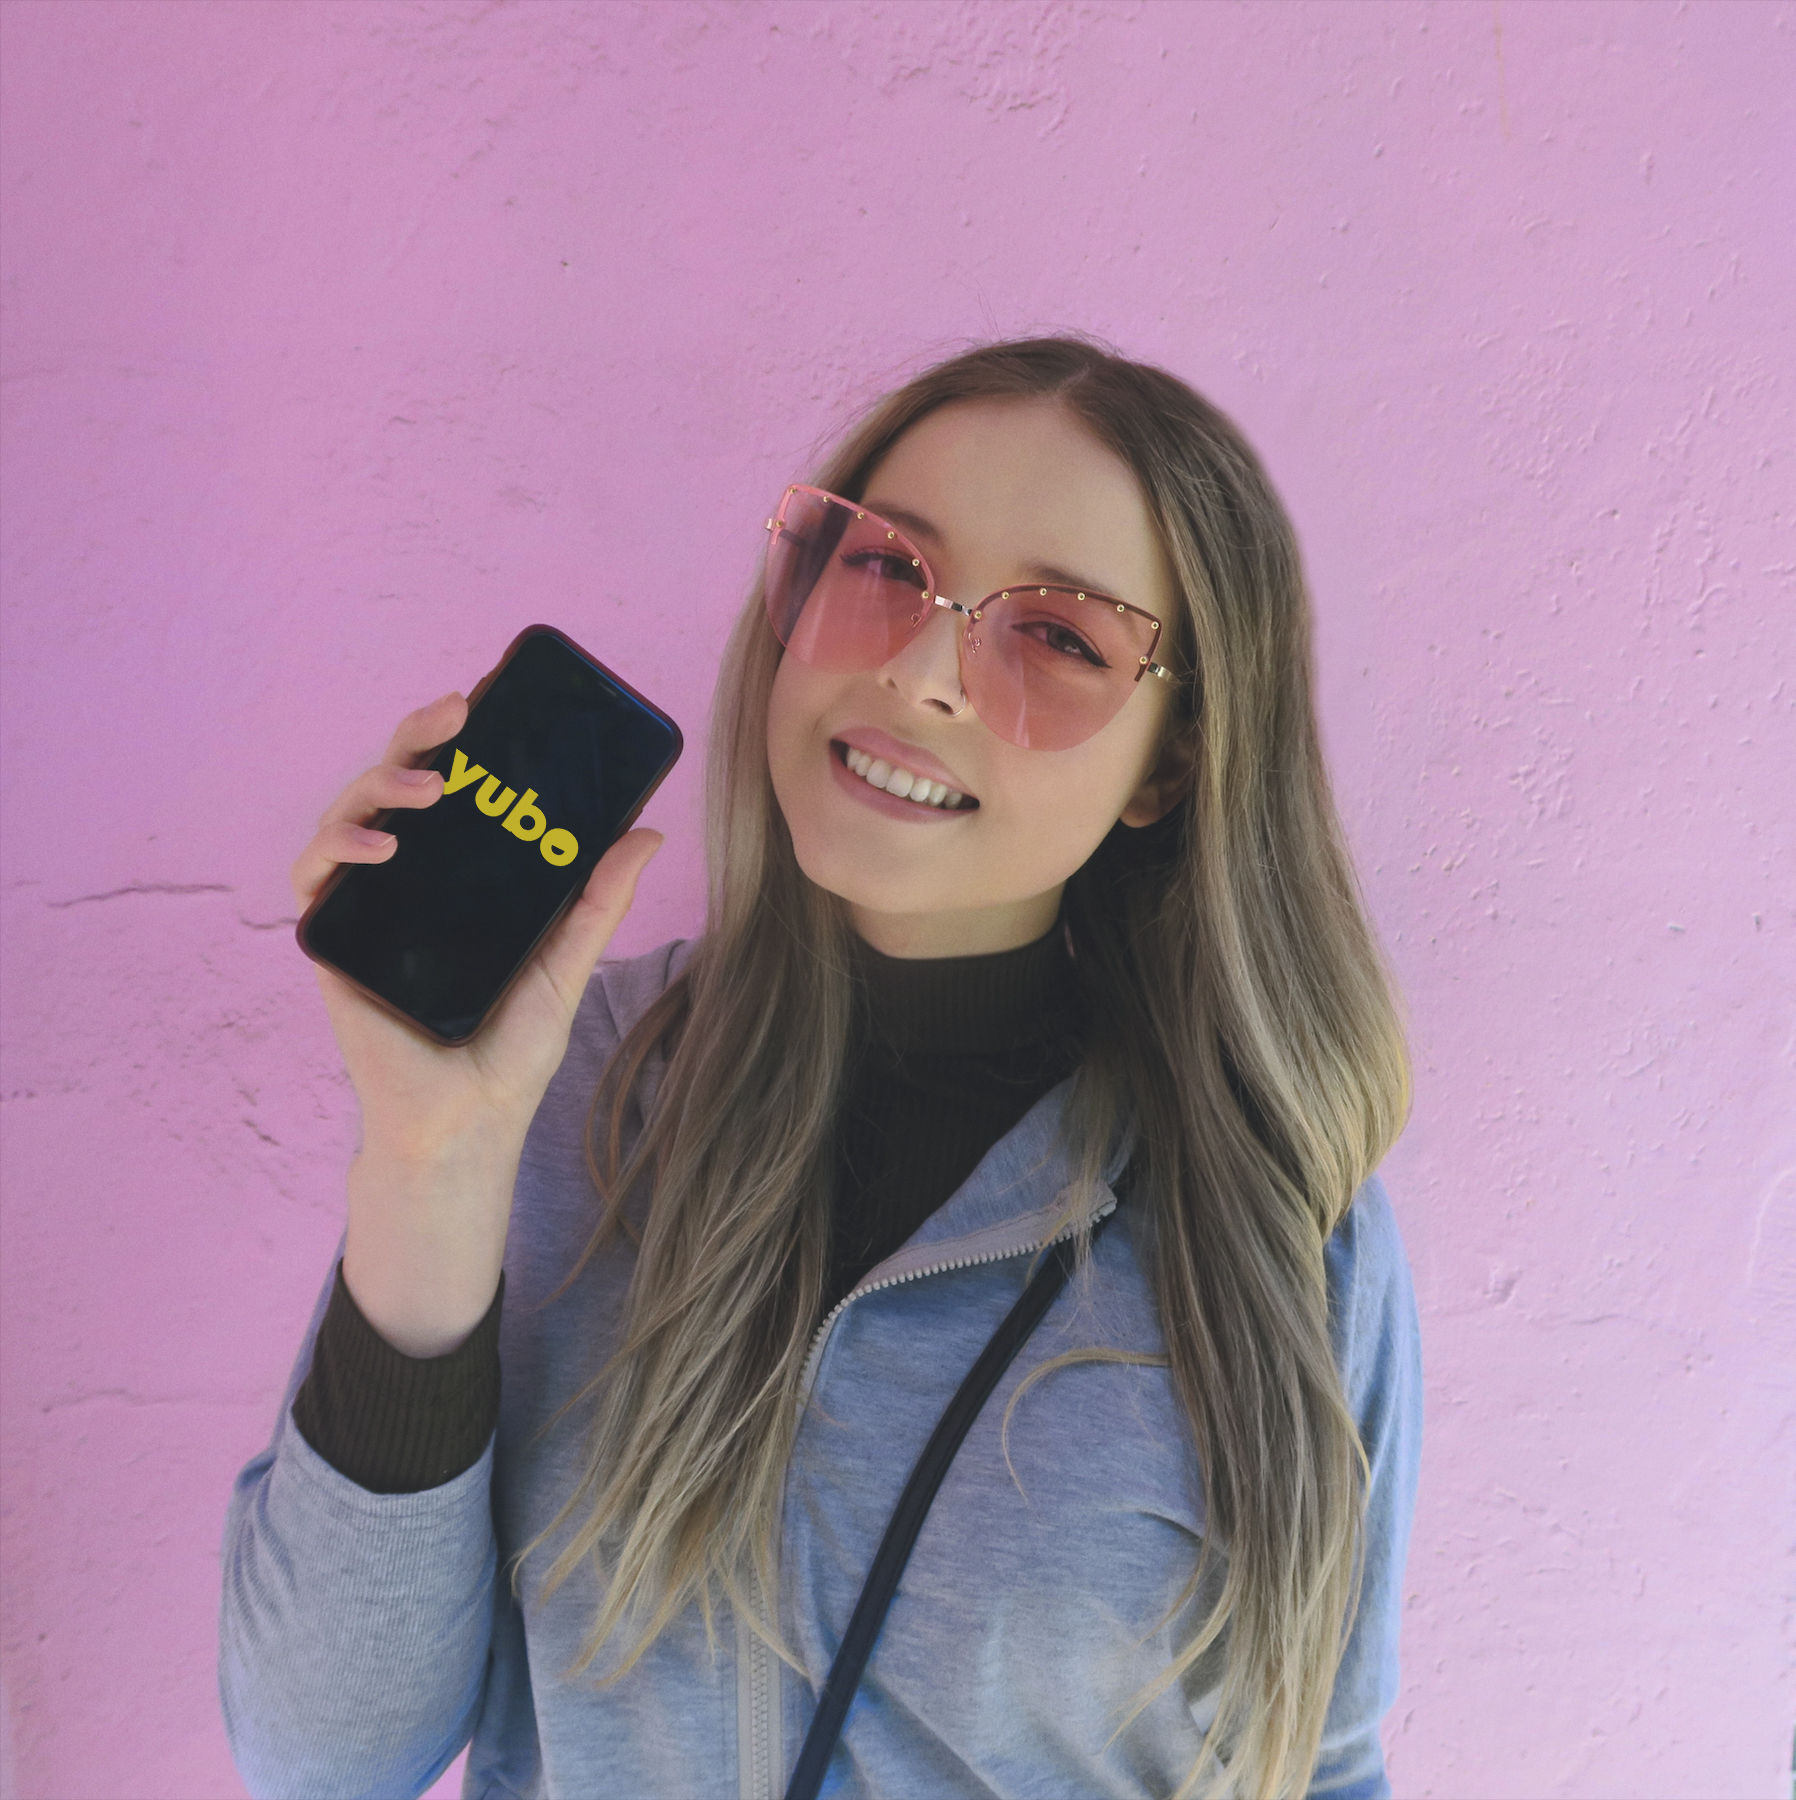 Influencer Maya holding her phone with the Yubo app open